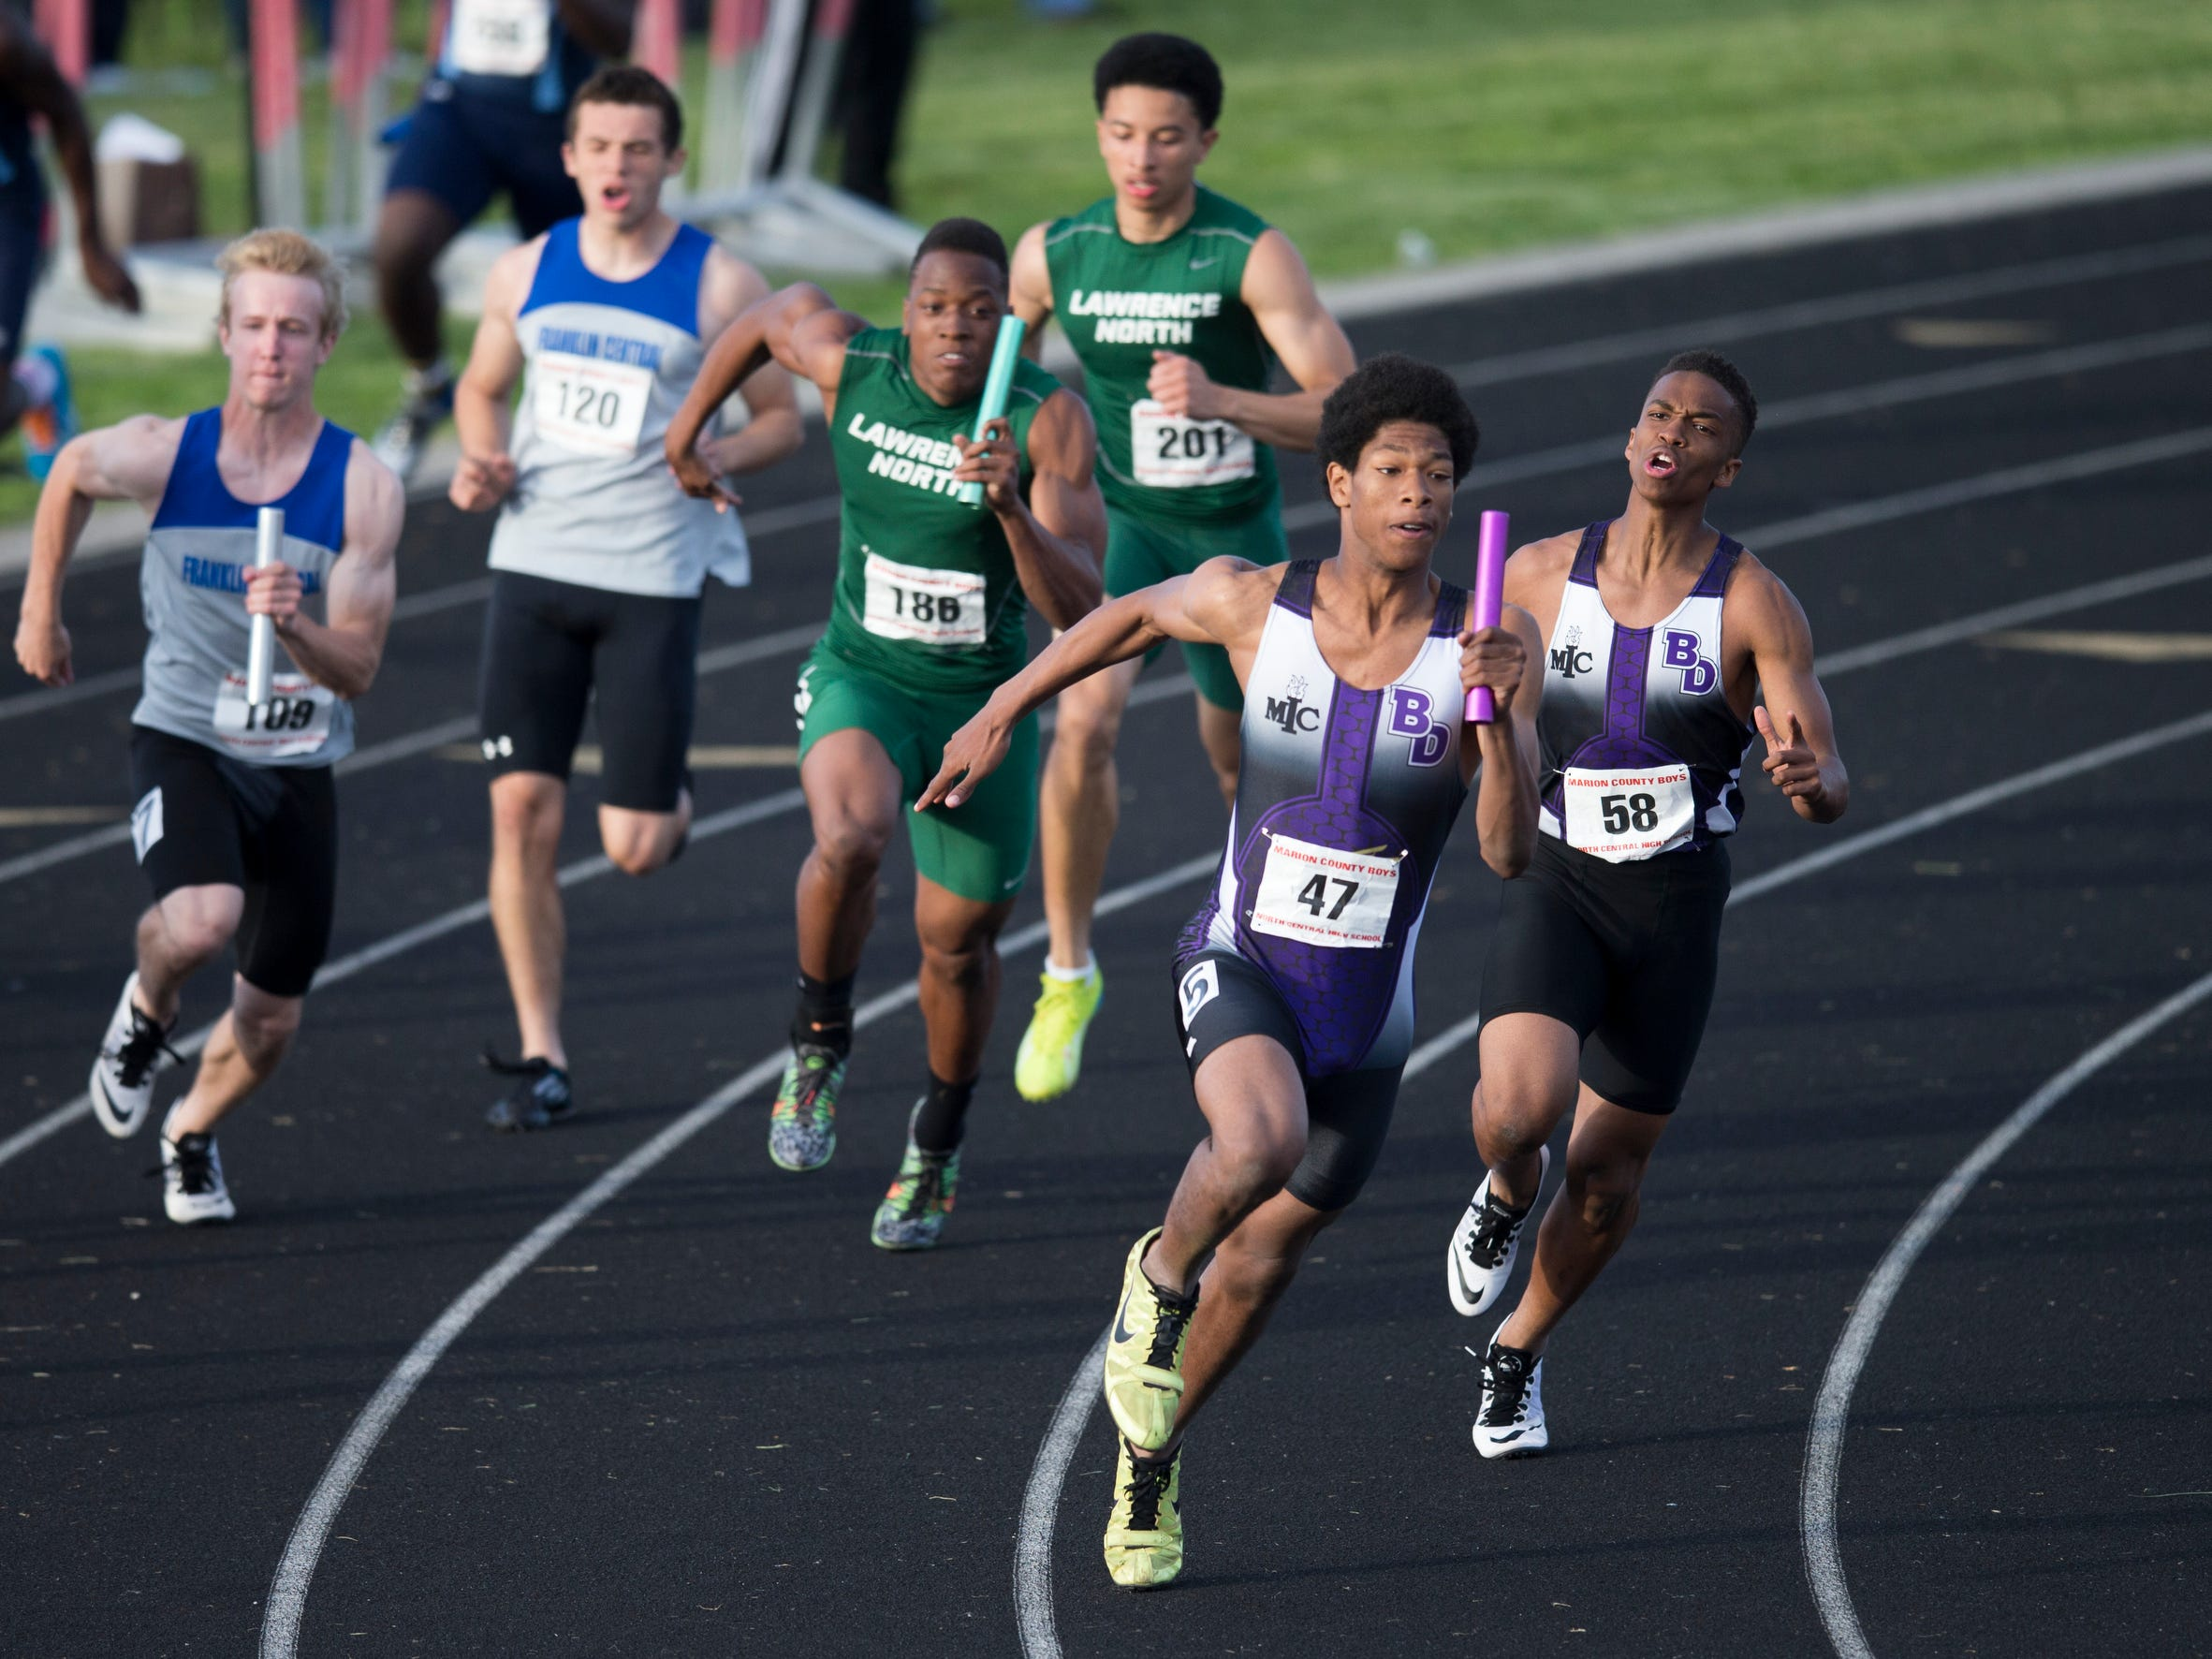 Christian Powell (47), of the Ben Davis High School team, heads out on the final leg after taking a handoff from Rodney Williams, during their winning 4 X 100 meter effort, boys marion county track meet, Indianapolis, Wednesday, May 13, 2015.